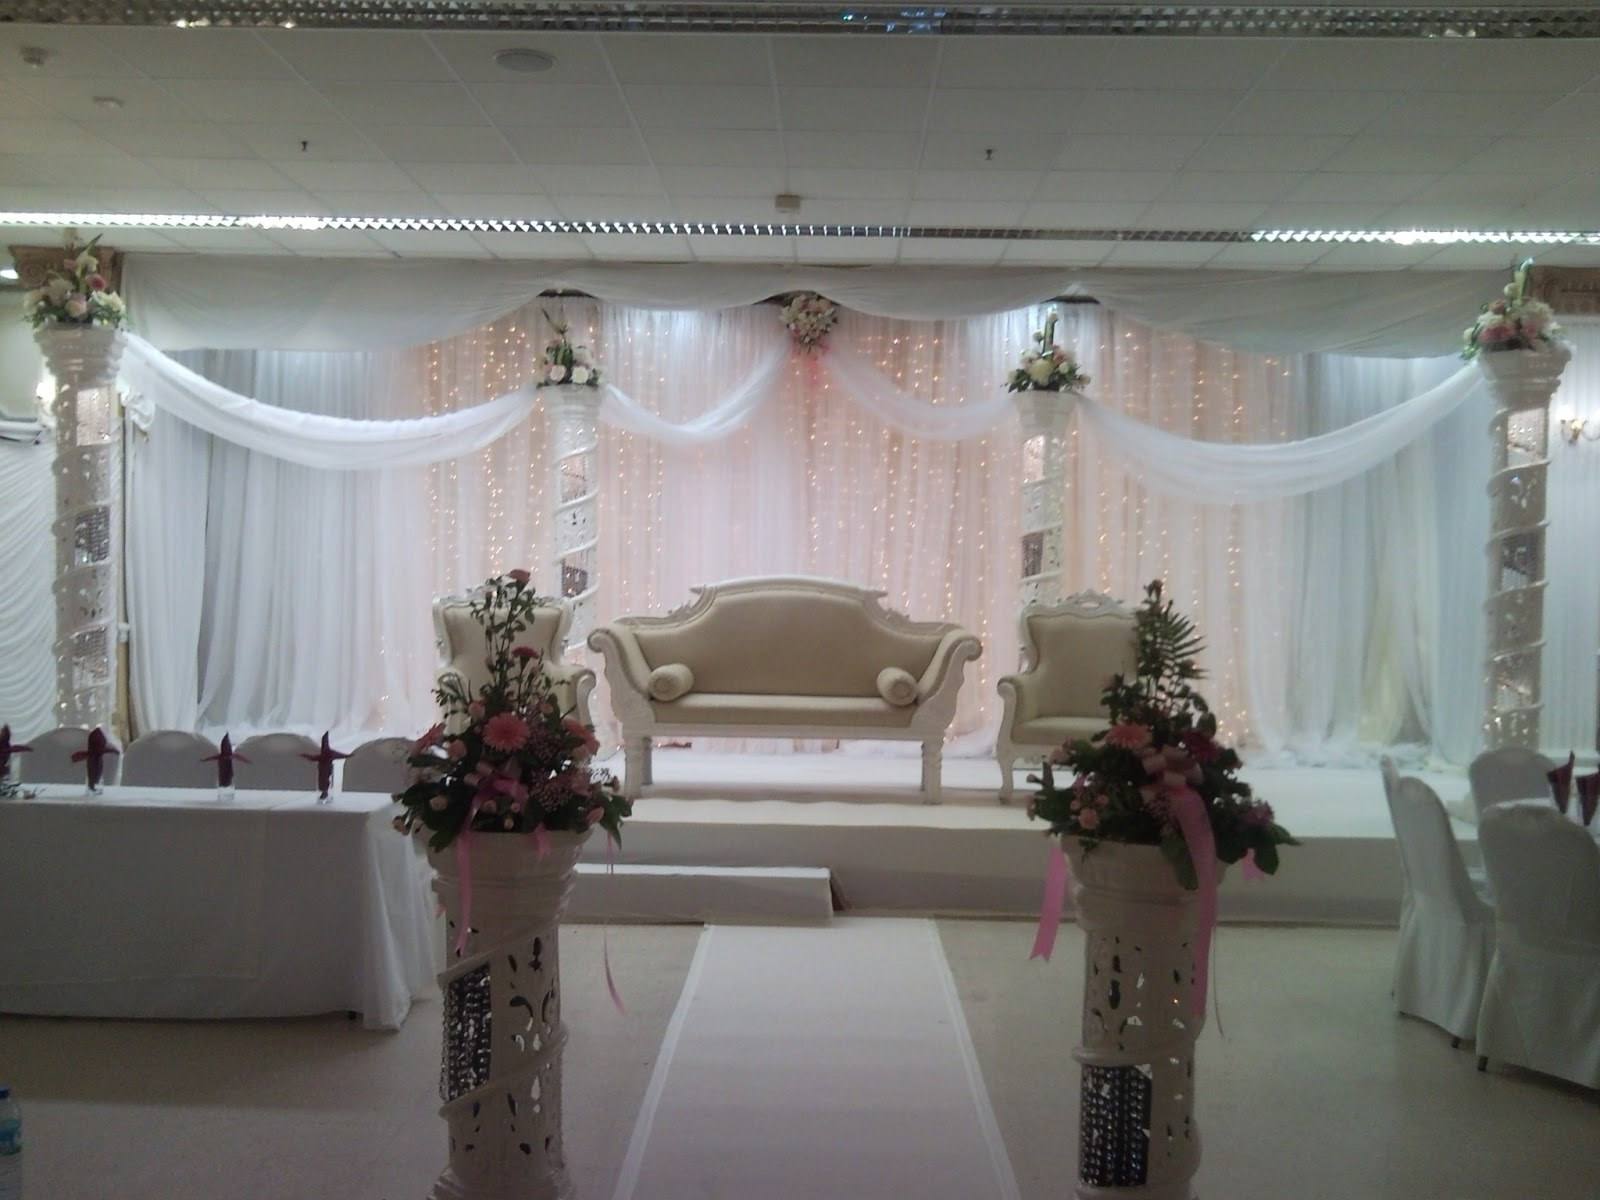 About marriage marriage decoration photos 2013 marriage for Latest decoration ideas